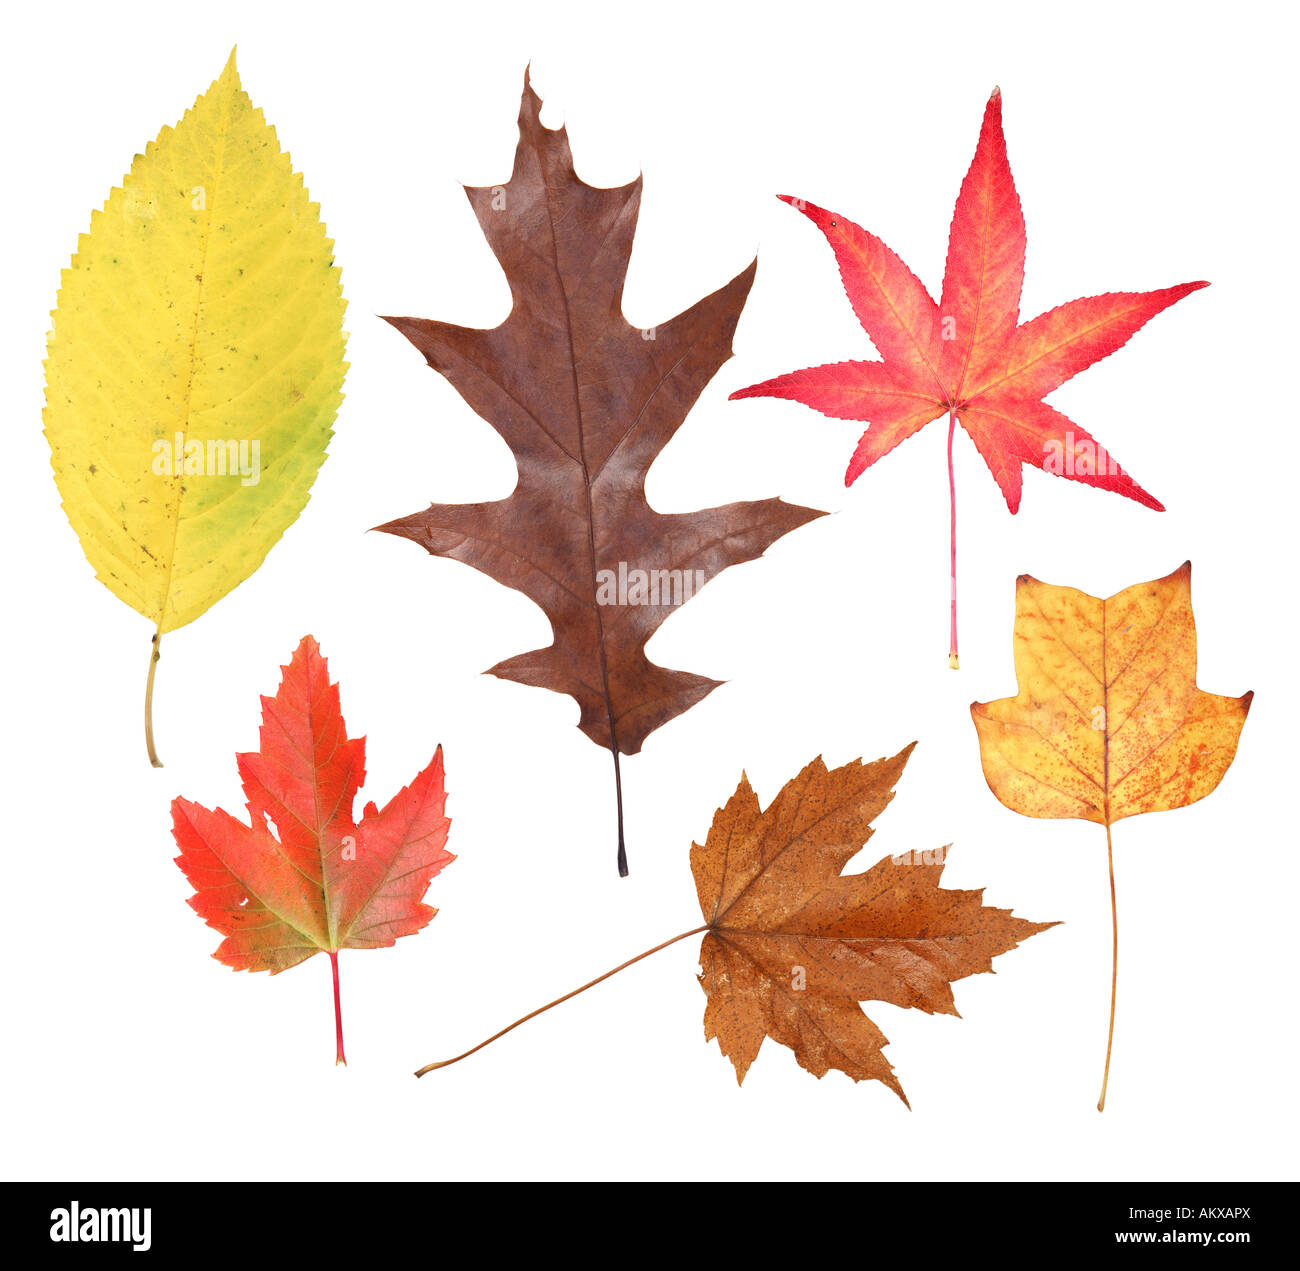 - Variety Of Fall Leaves Cut Out On White Background Stock Photo